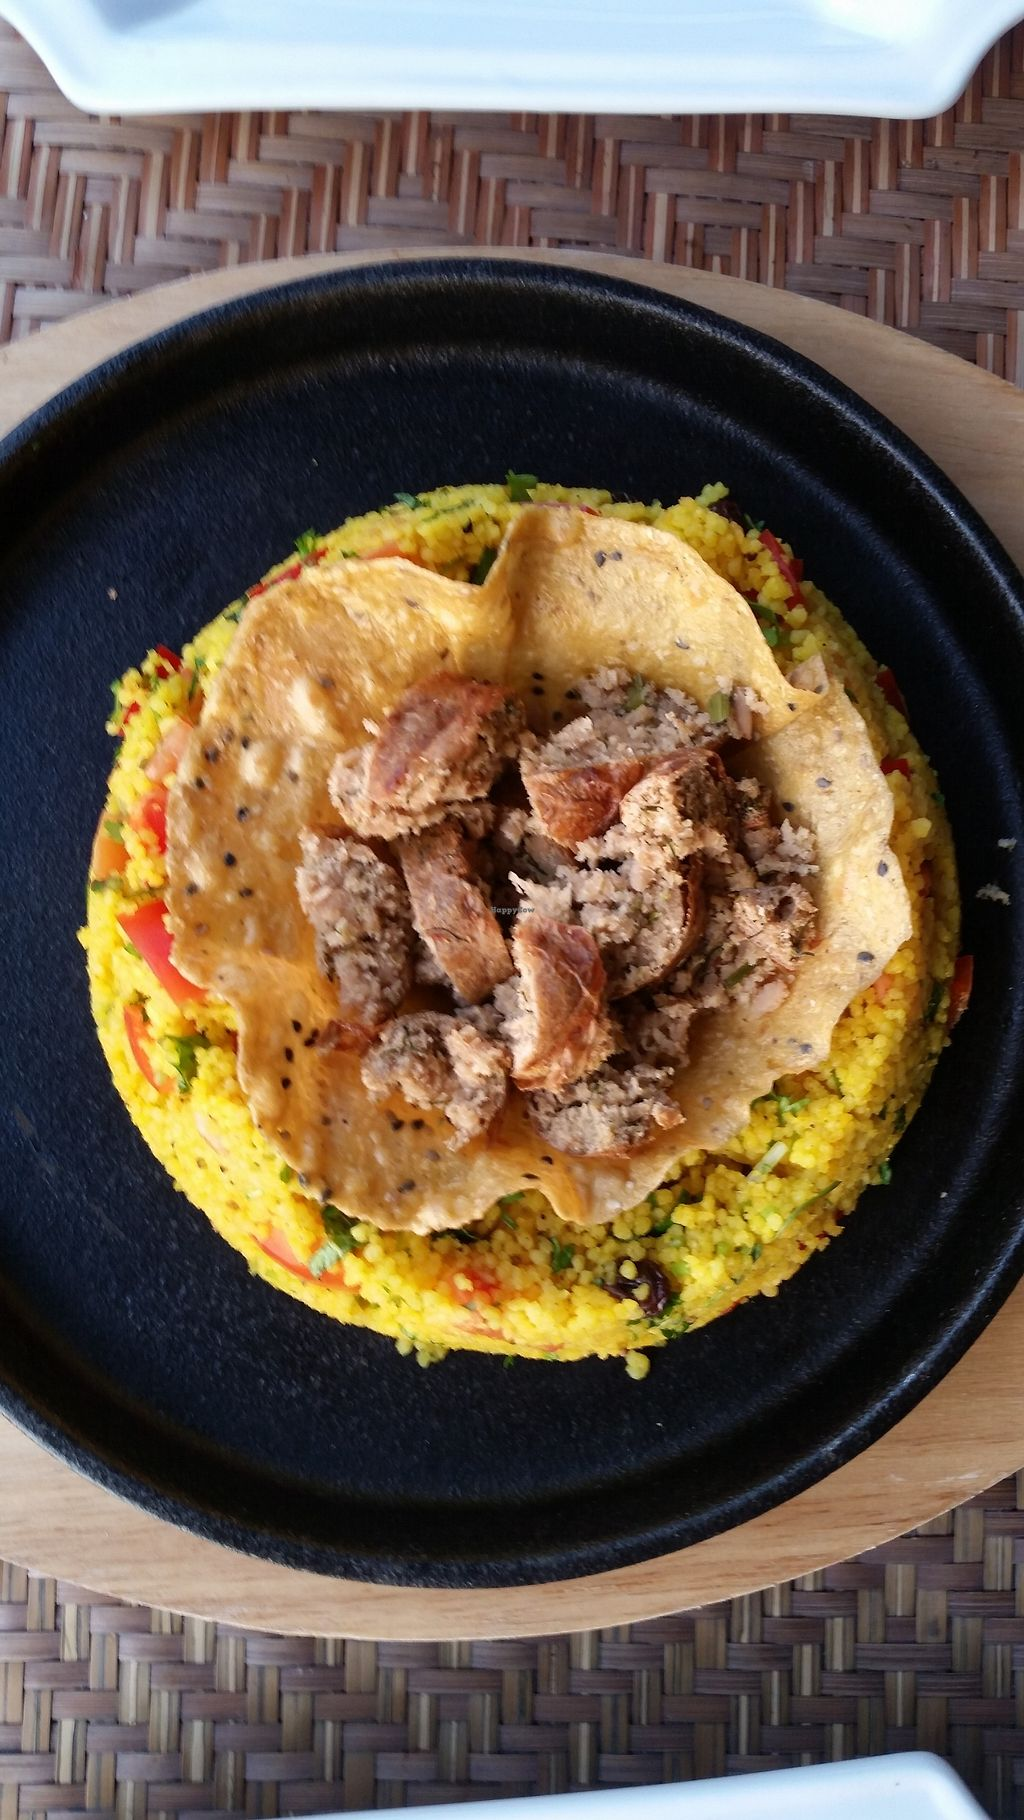 """Photo of Ock Pop Tok Living Craft Centre  by <a href=""""/members/profile/Nimeda"""">Nimeda</a> <br/>Tabouleh with vegan sausage in a galette <br/> February 14, 2018  - <a href='/contact/abuse/image/111949/359052'>Report</a>"""